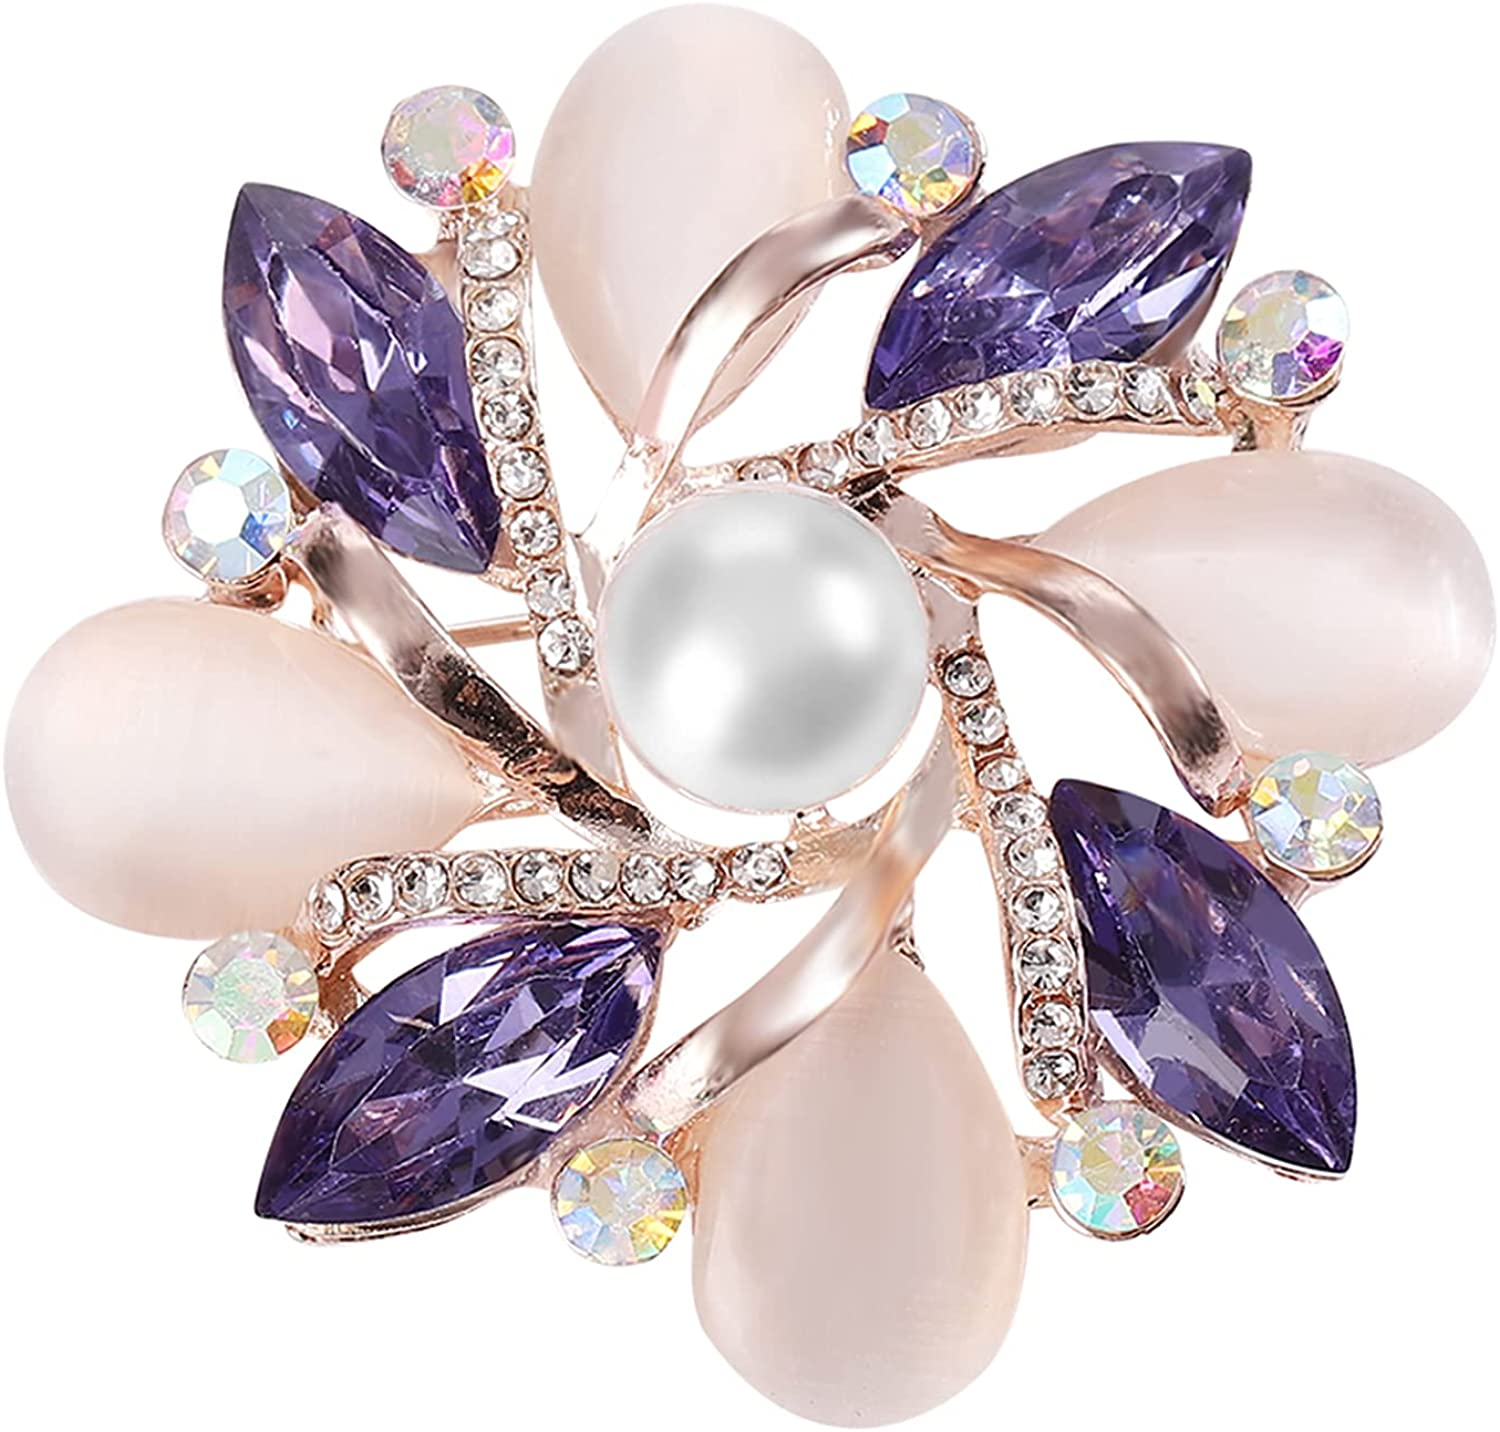 Costume Jewelry for Women Flower Brooch Pins for Women Fashion Crystal Broches Vintage Jewelry Broche Pins